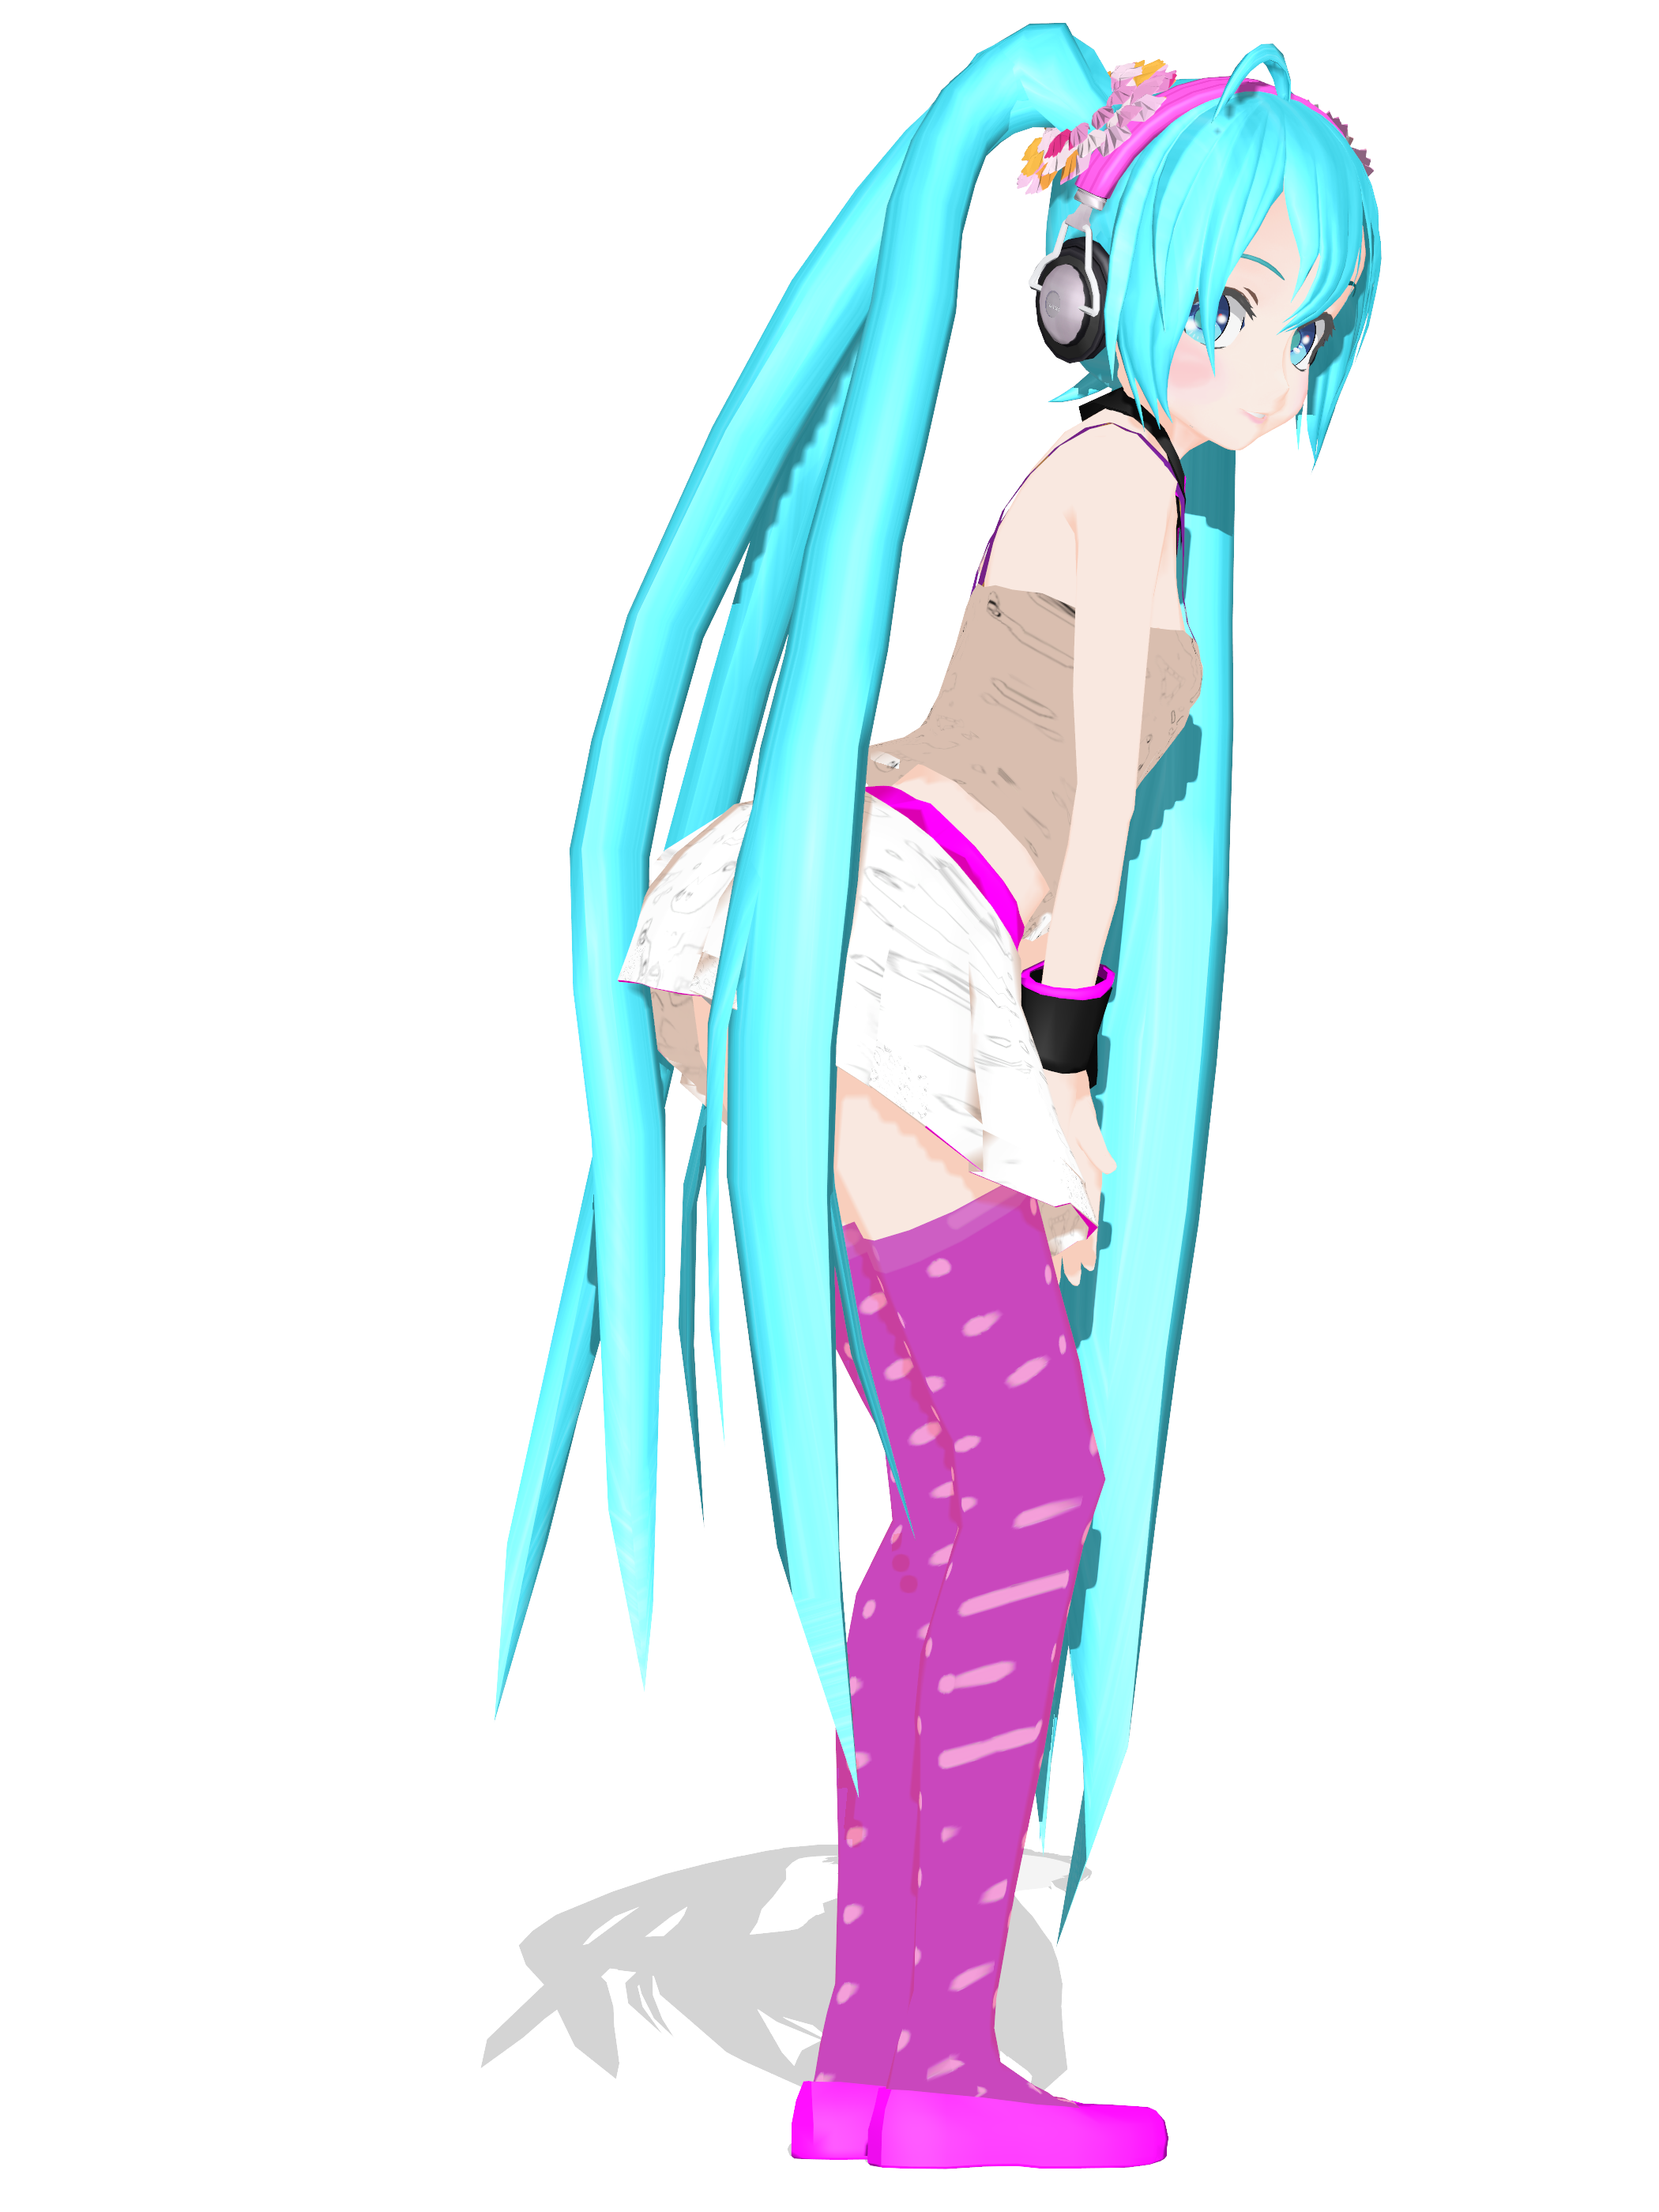 .: DL Series :. ReDial Miku Hatsune by Duekko